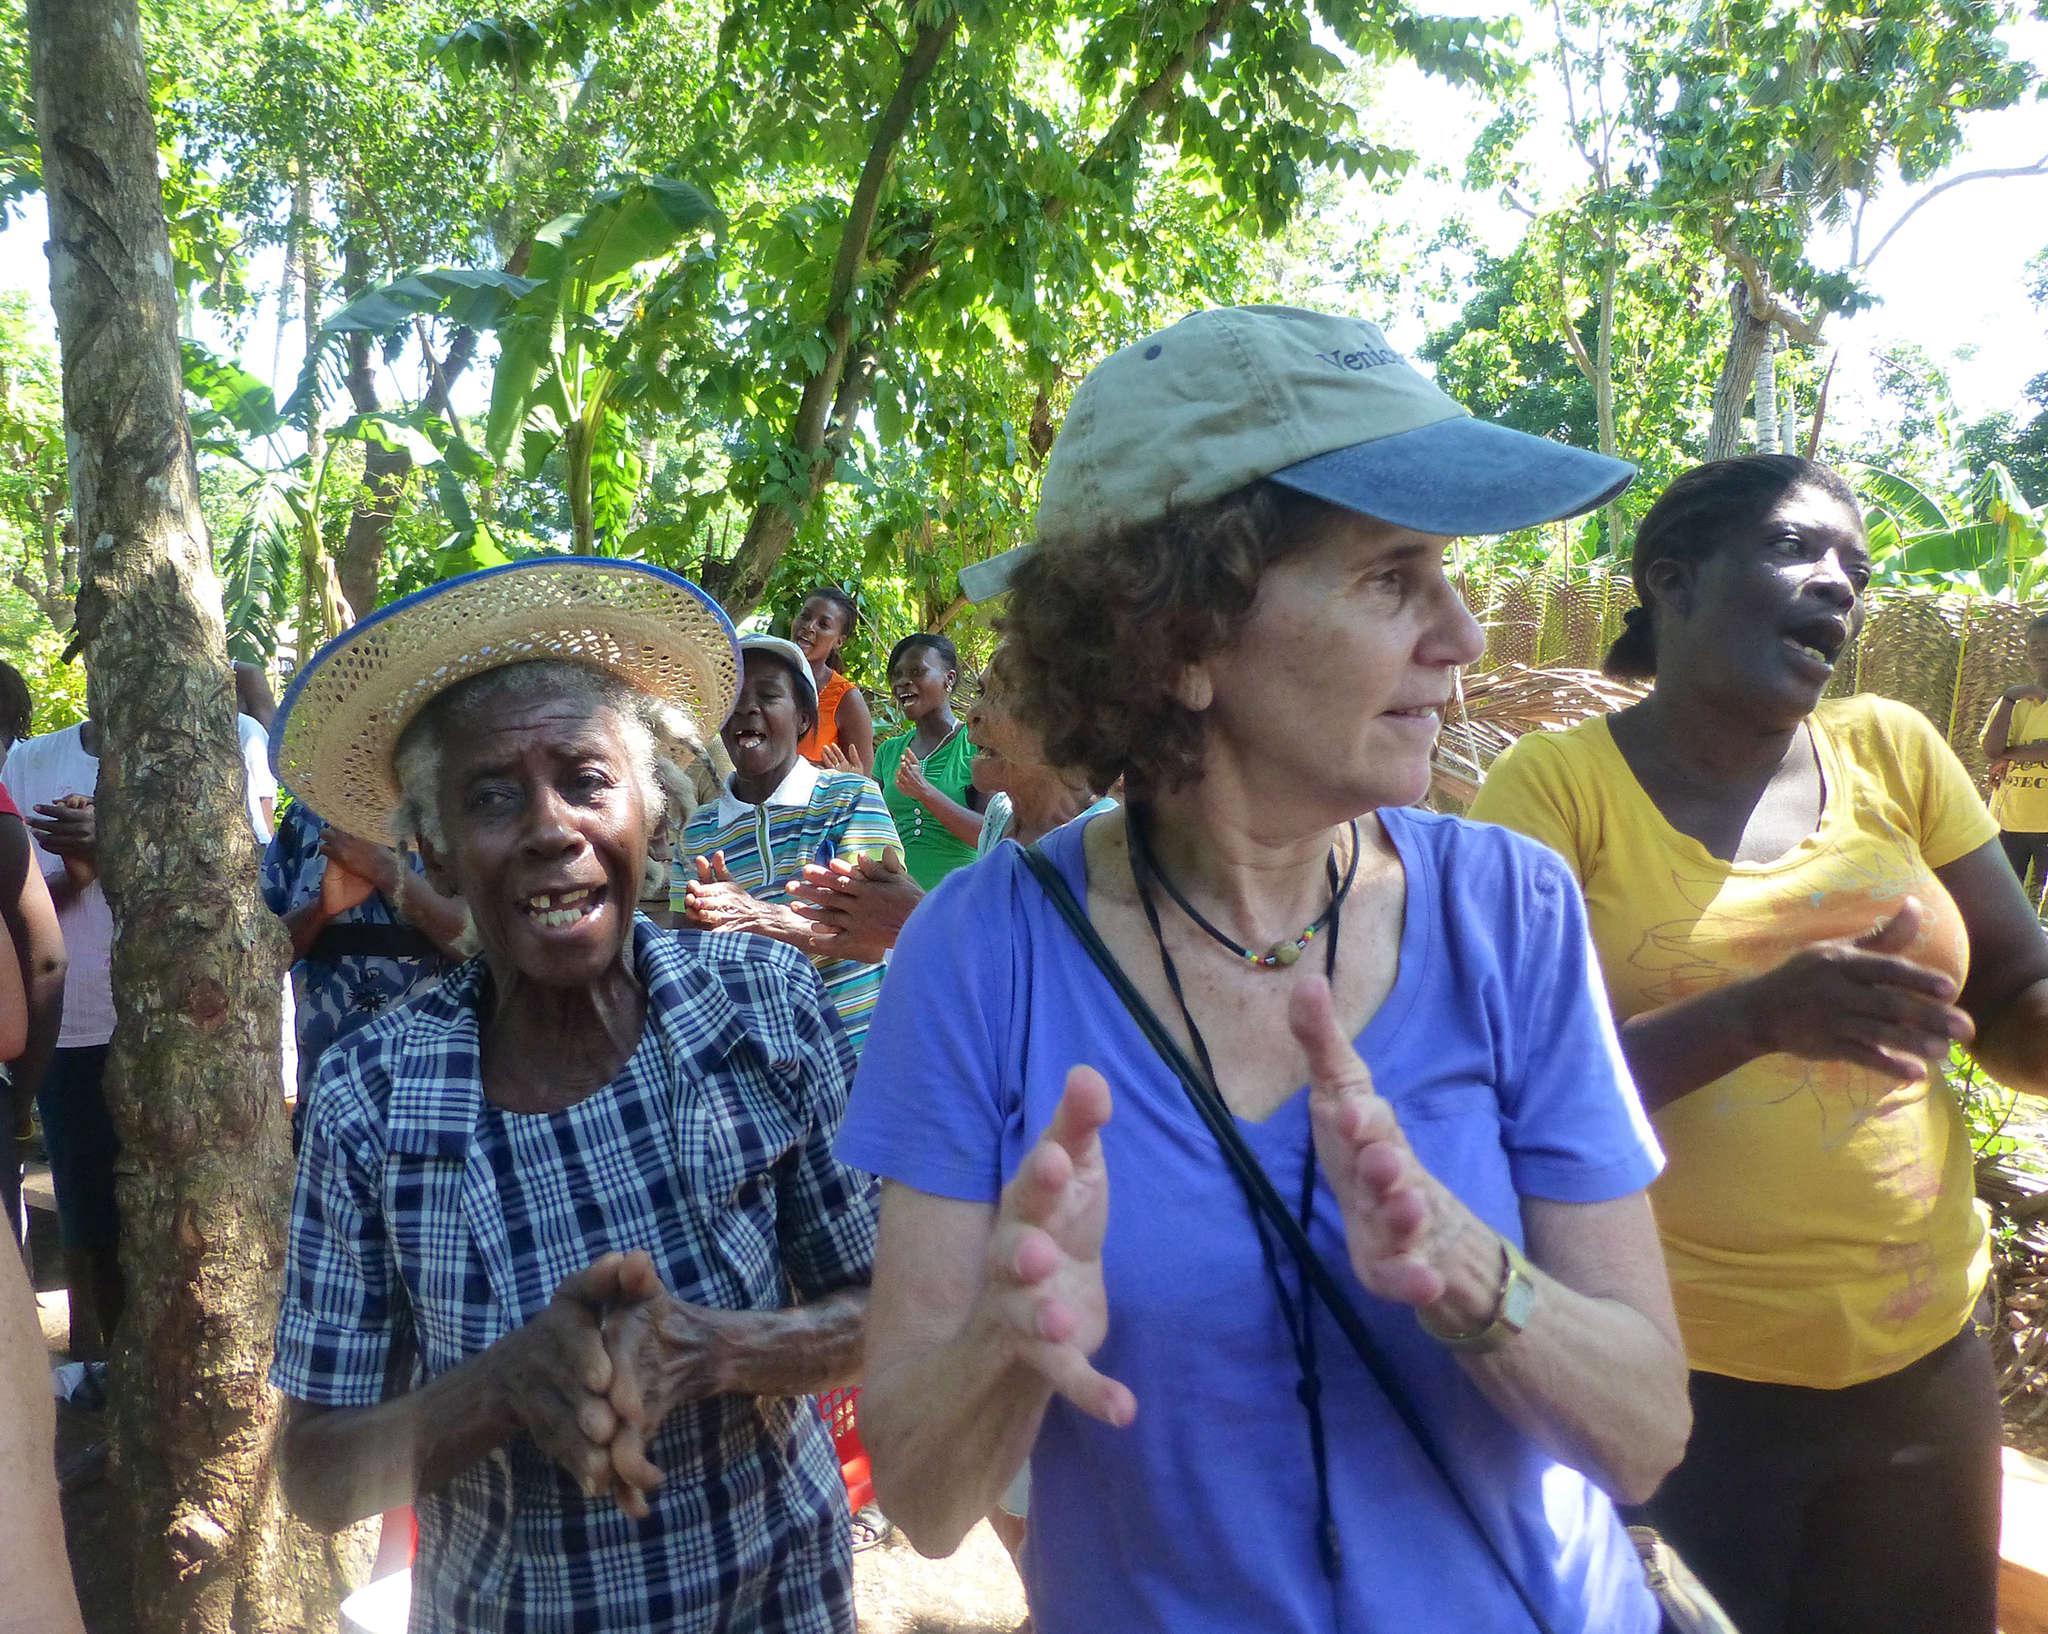 WIL co-founder Linda Resnick (center) sings and dances at a meeting for the micro-finance institute Fonkoze in Haiti. WIL provides loans and services for women in developing regions.